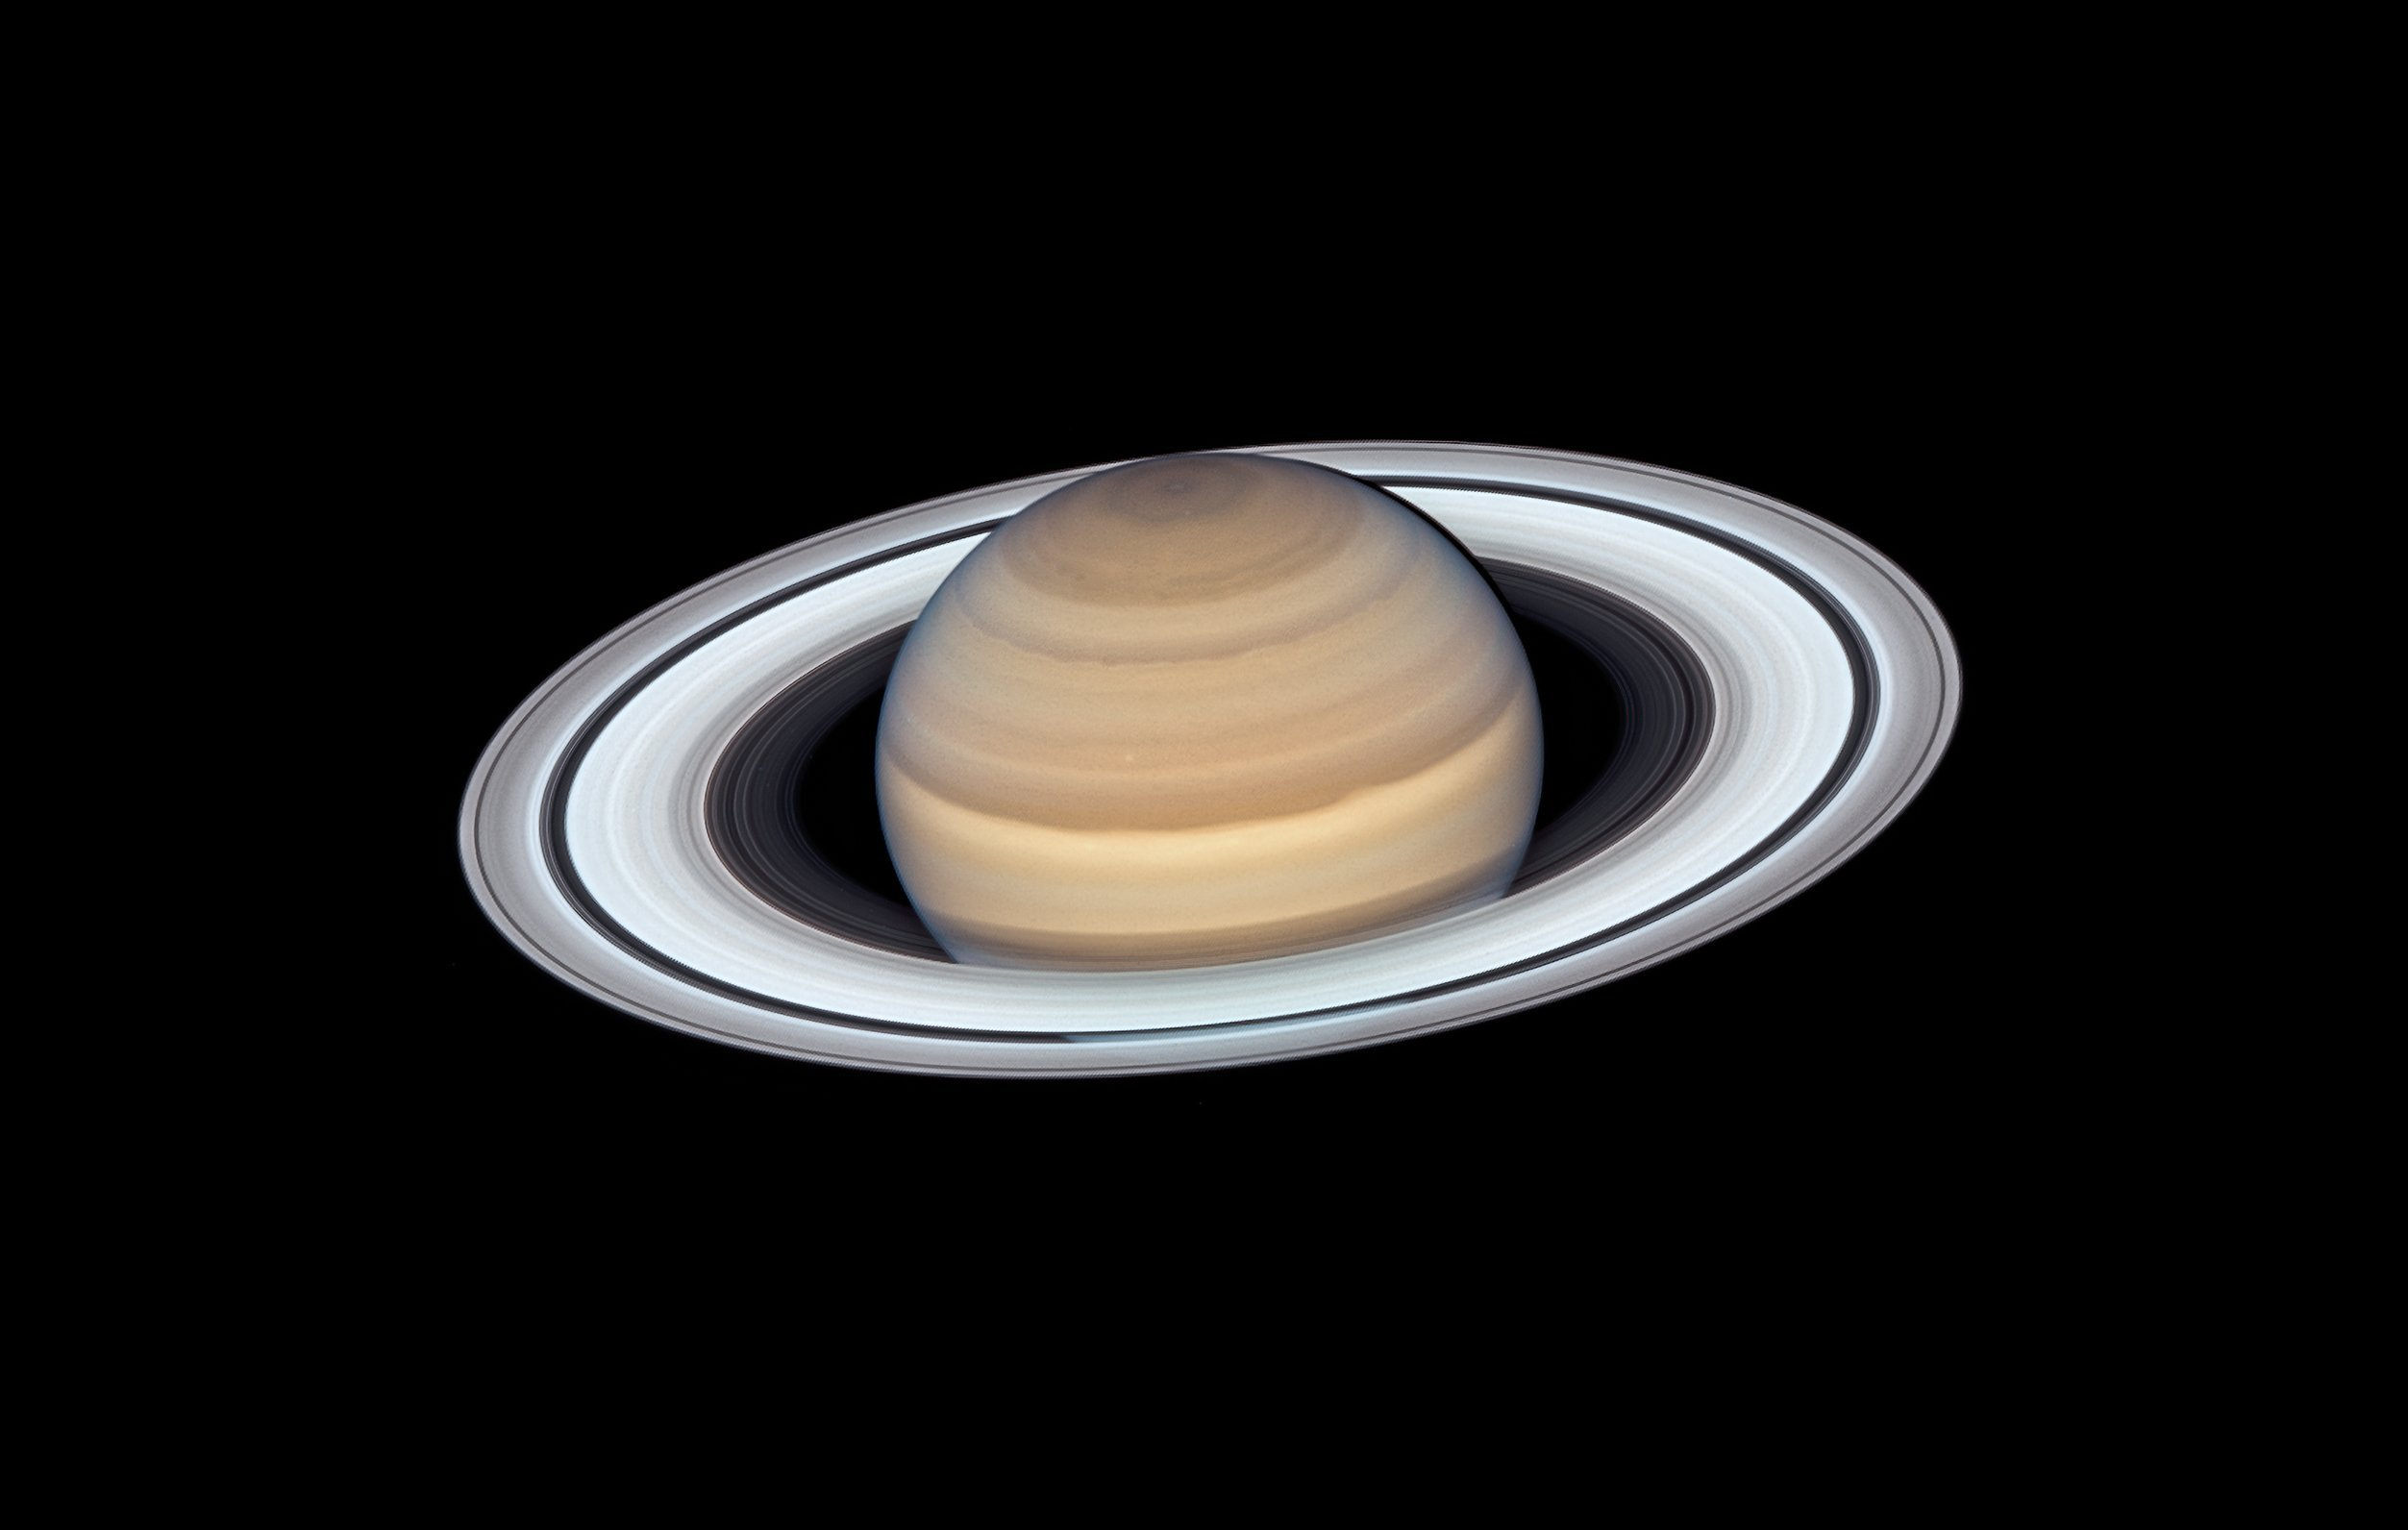 Hubble snaps new portrait of Saturn